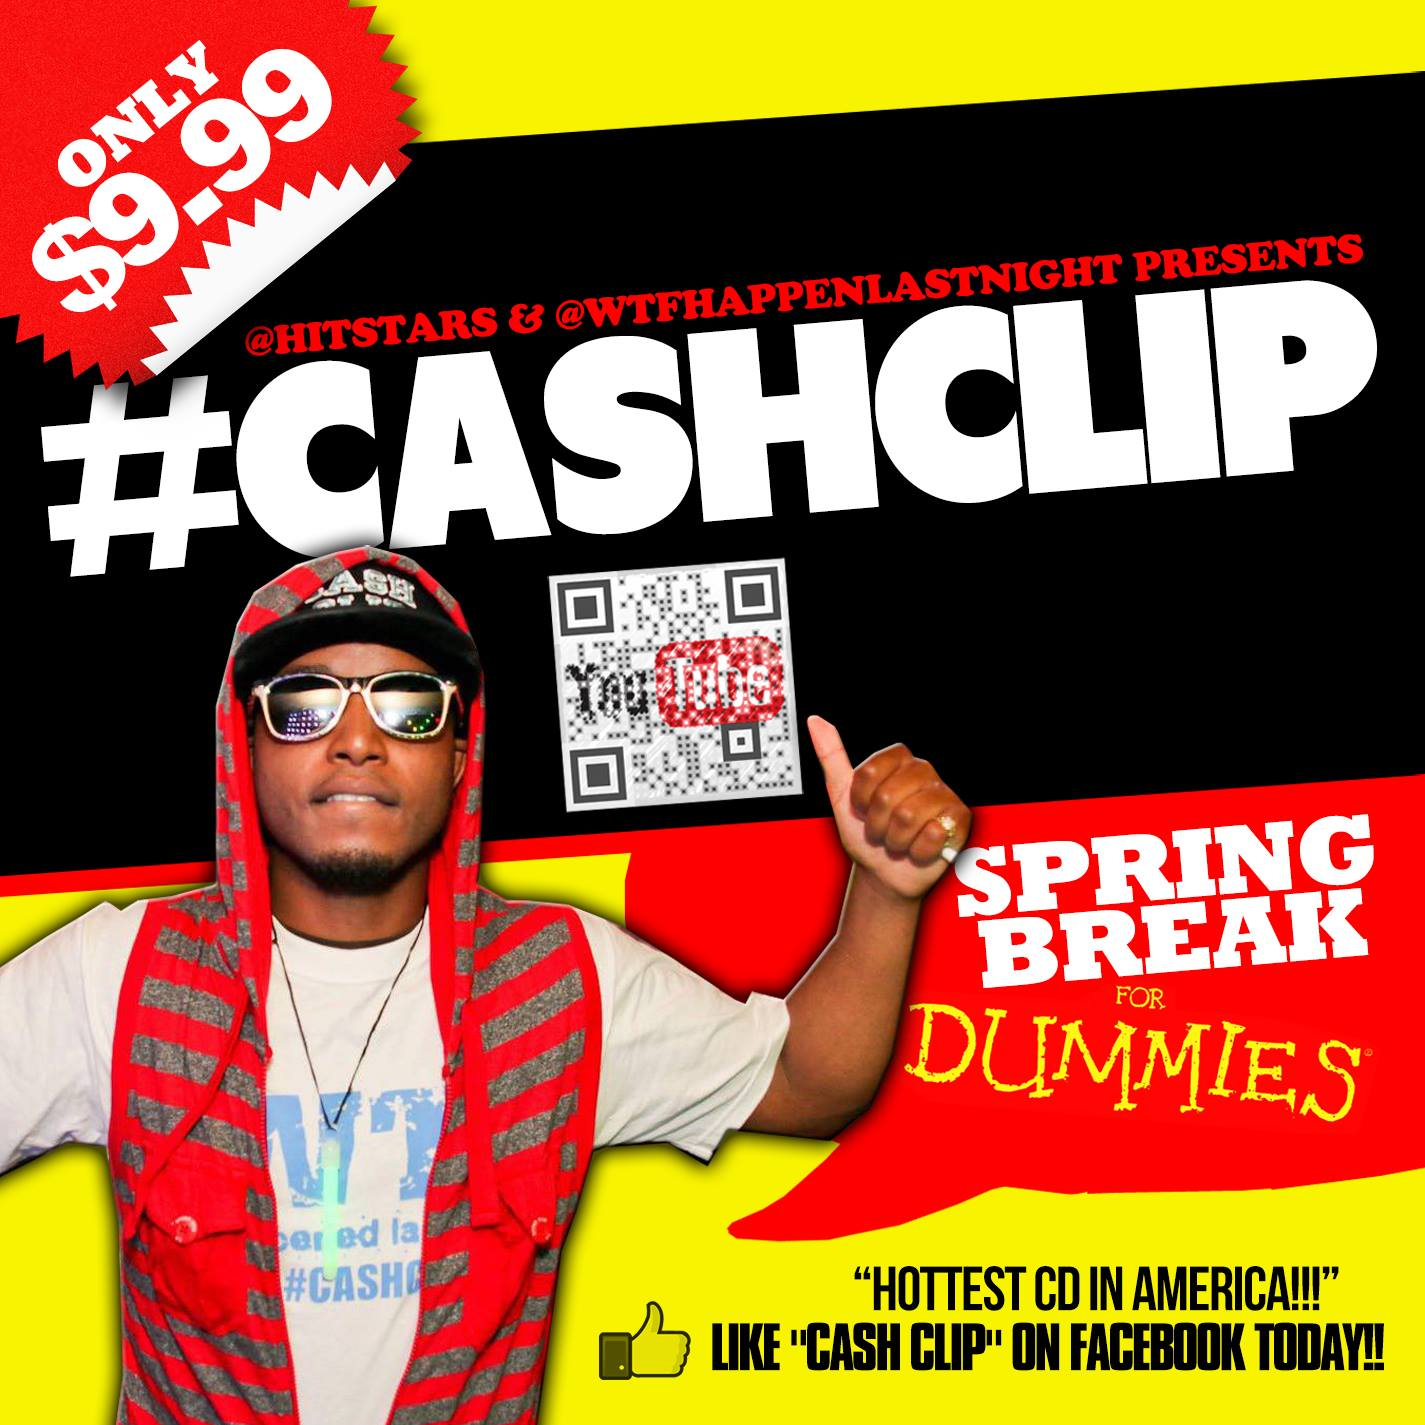 CASH CLIP SPRING BREAK FOR DUMMING WTF HAPPENED LAST NIGHT